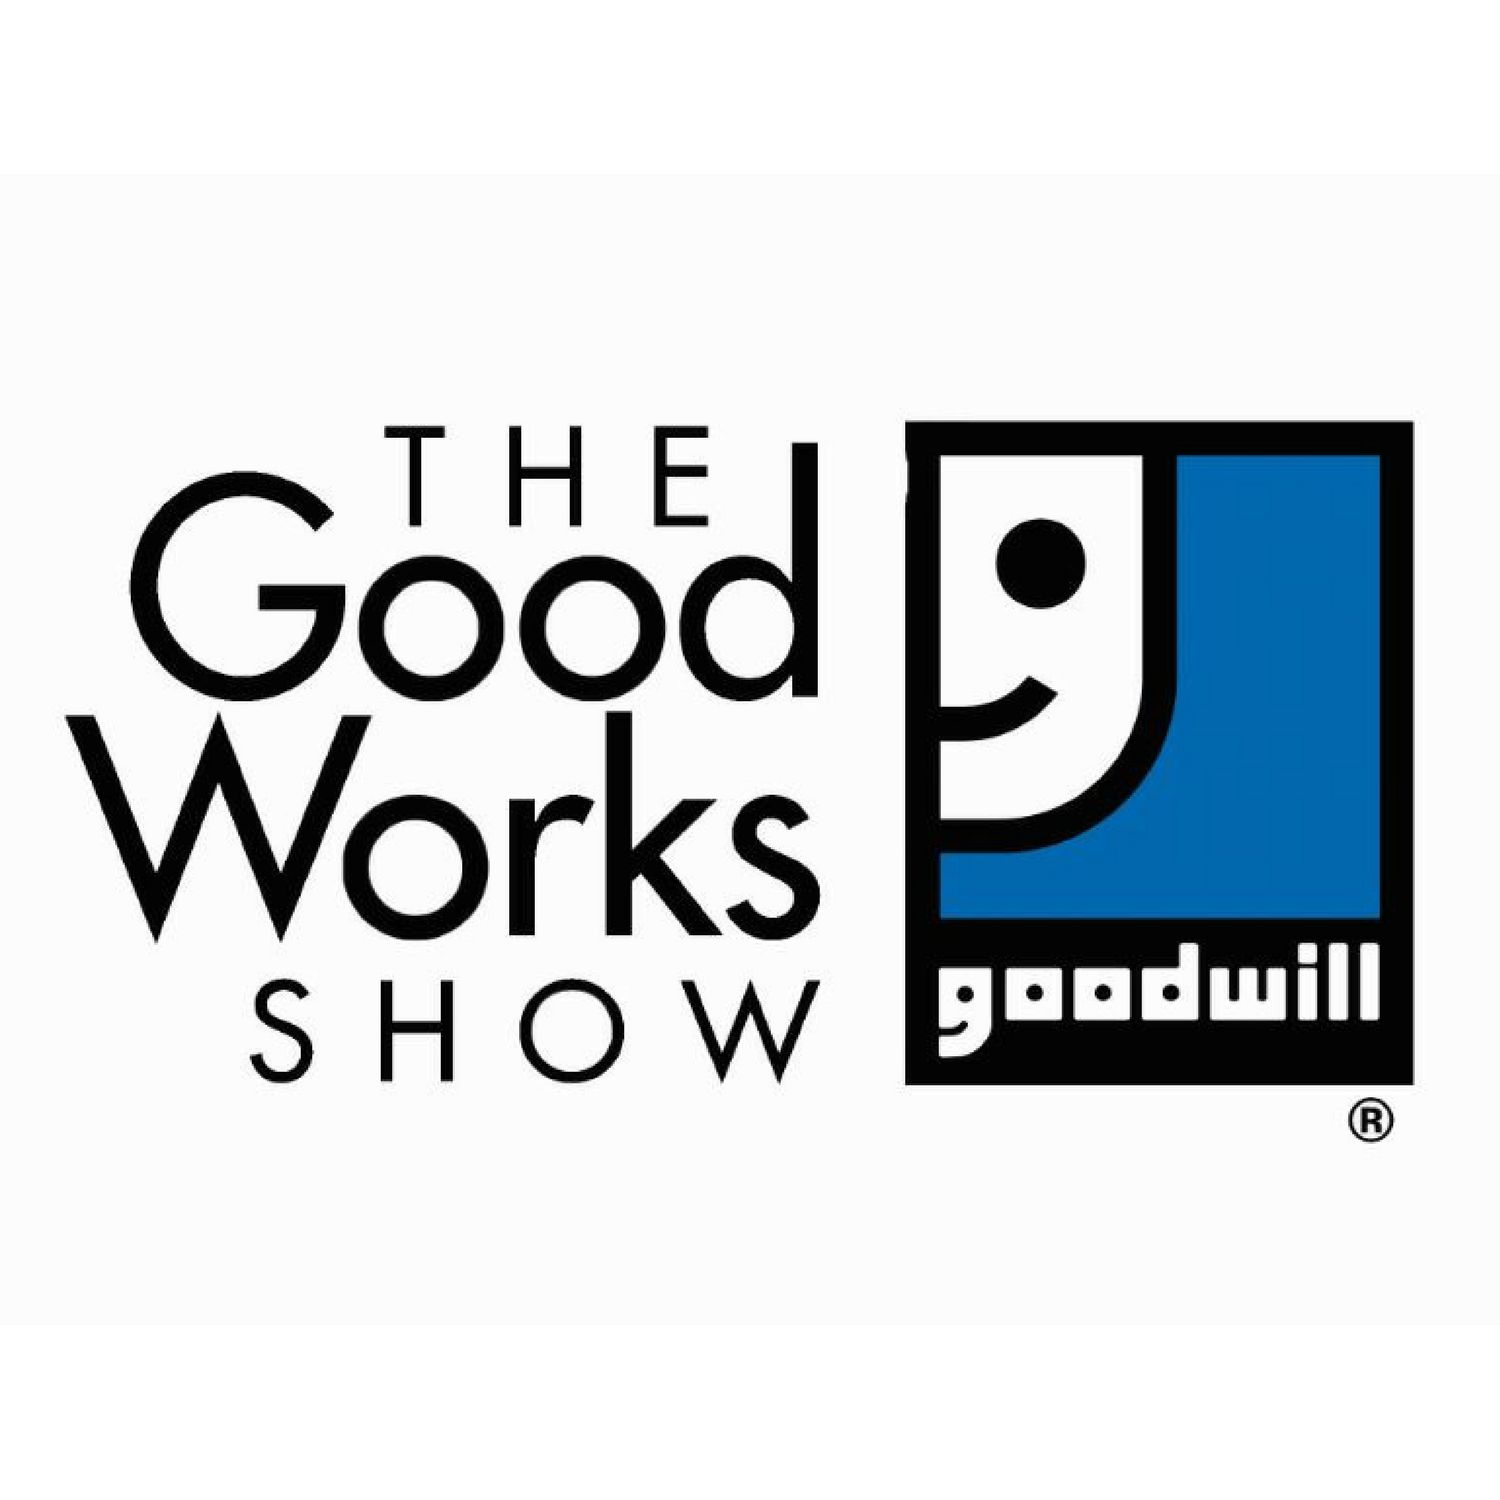 The Good Works Show